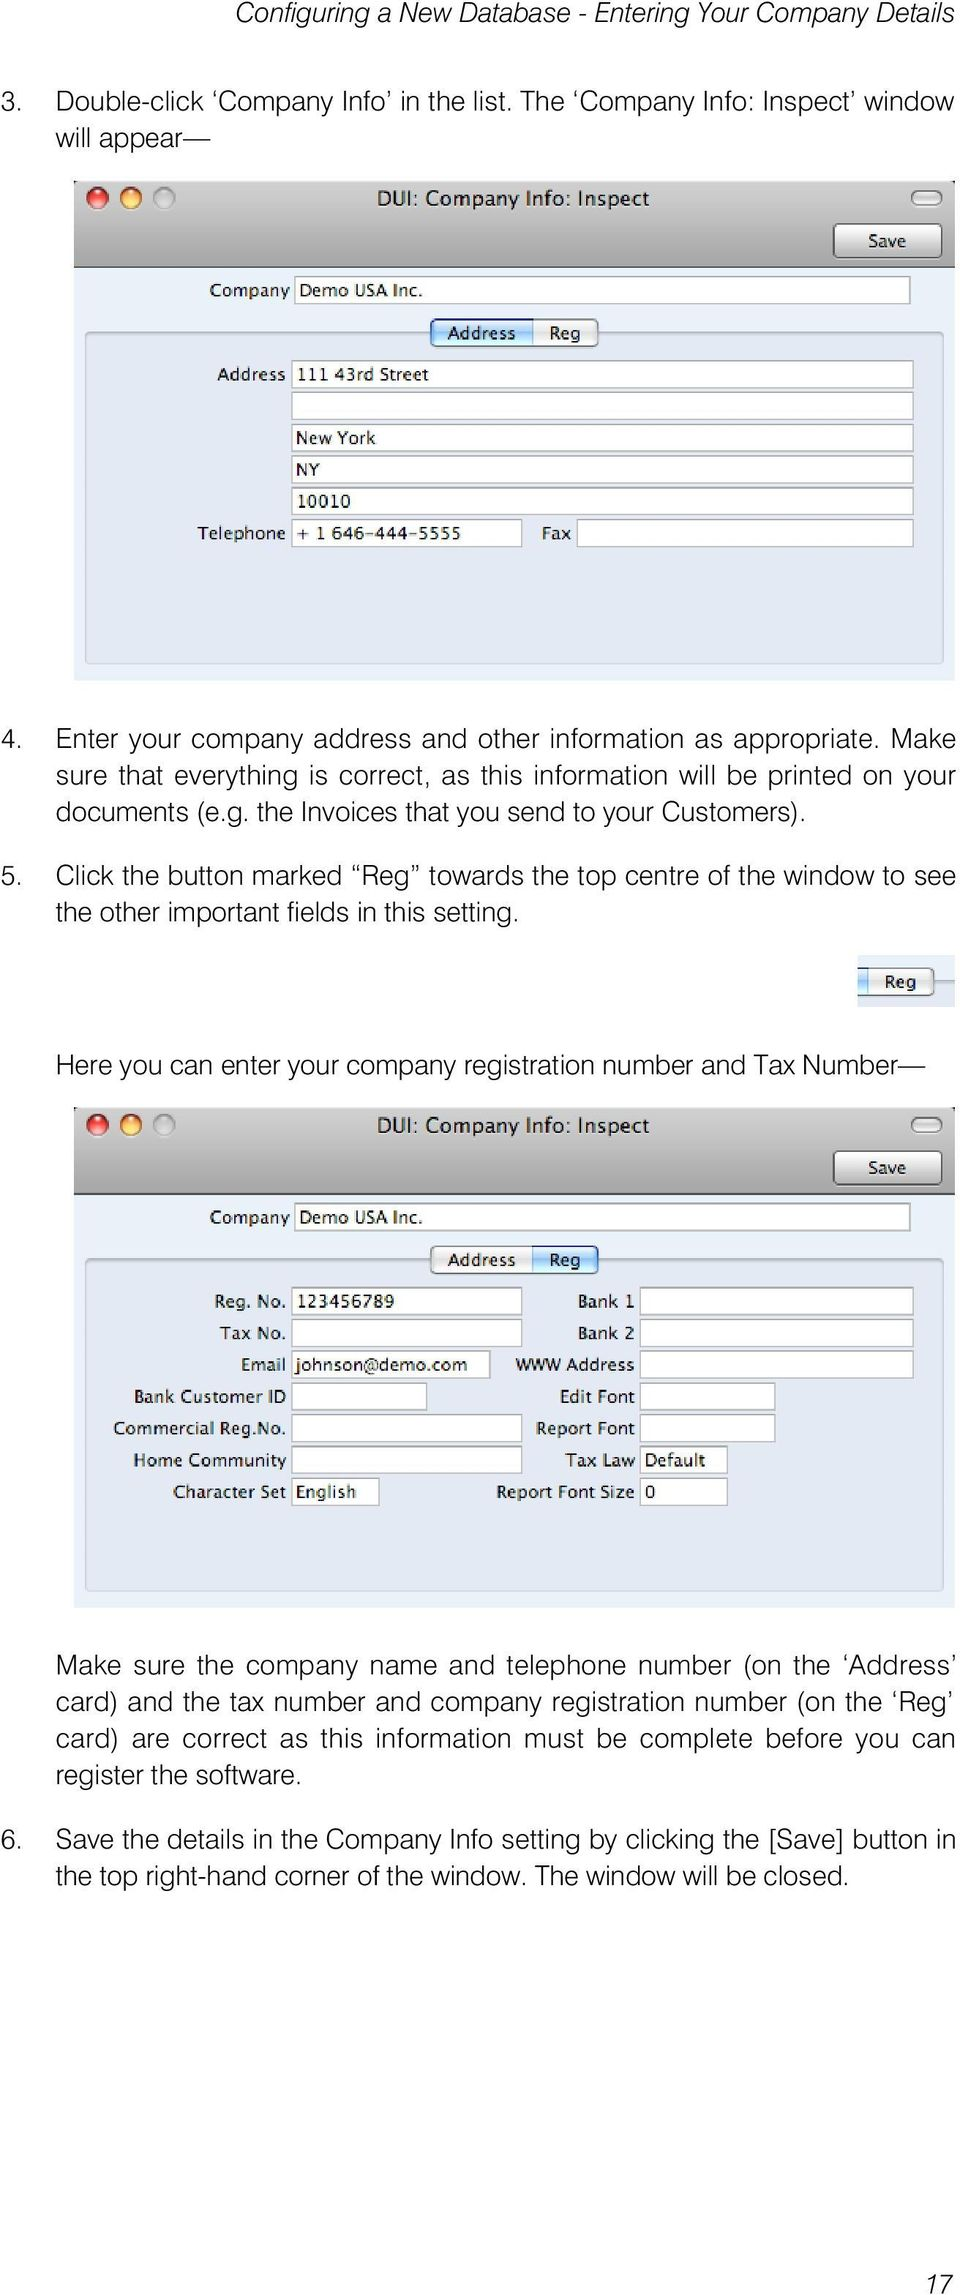 5. Click the button marked Reg towards the top centre of the window to see the other important fields in this setting.